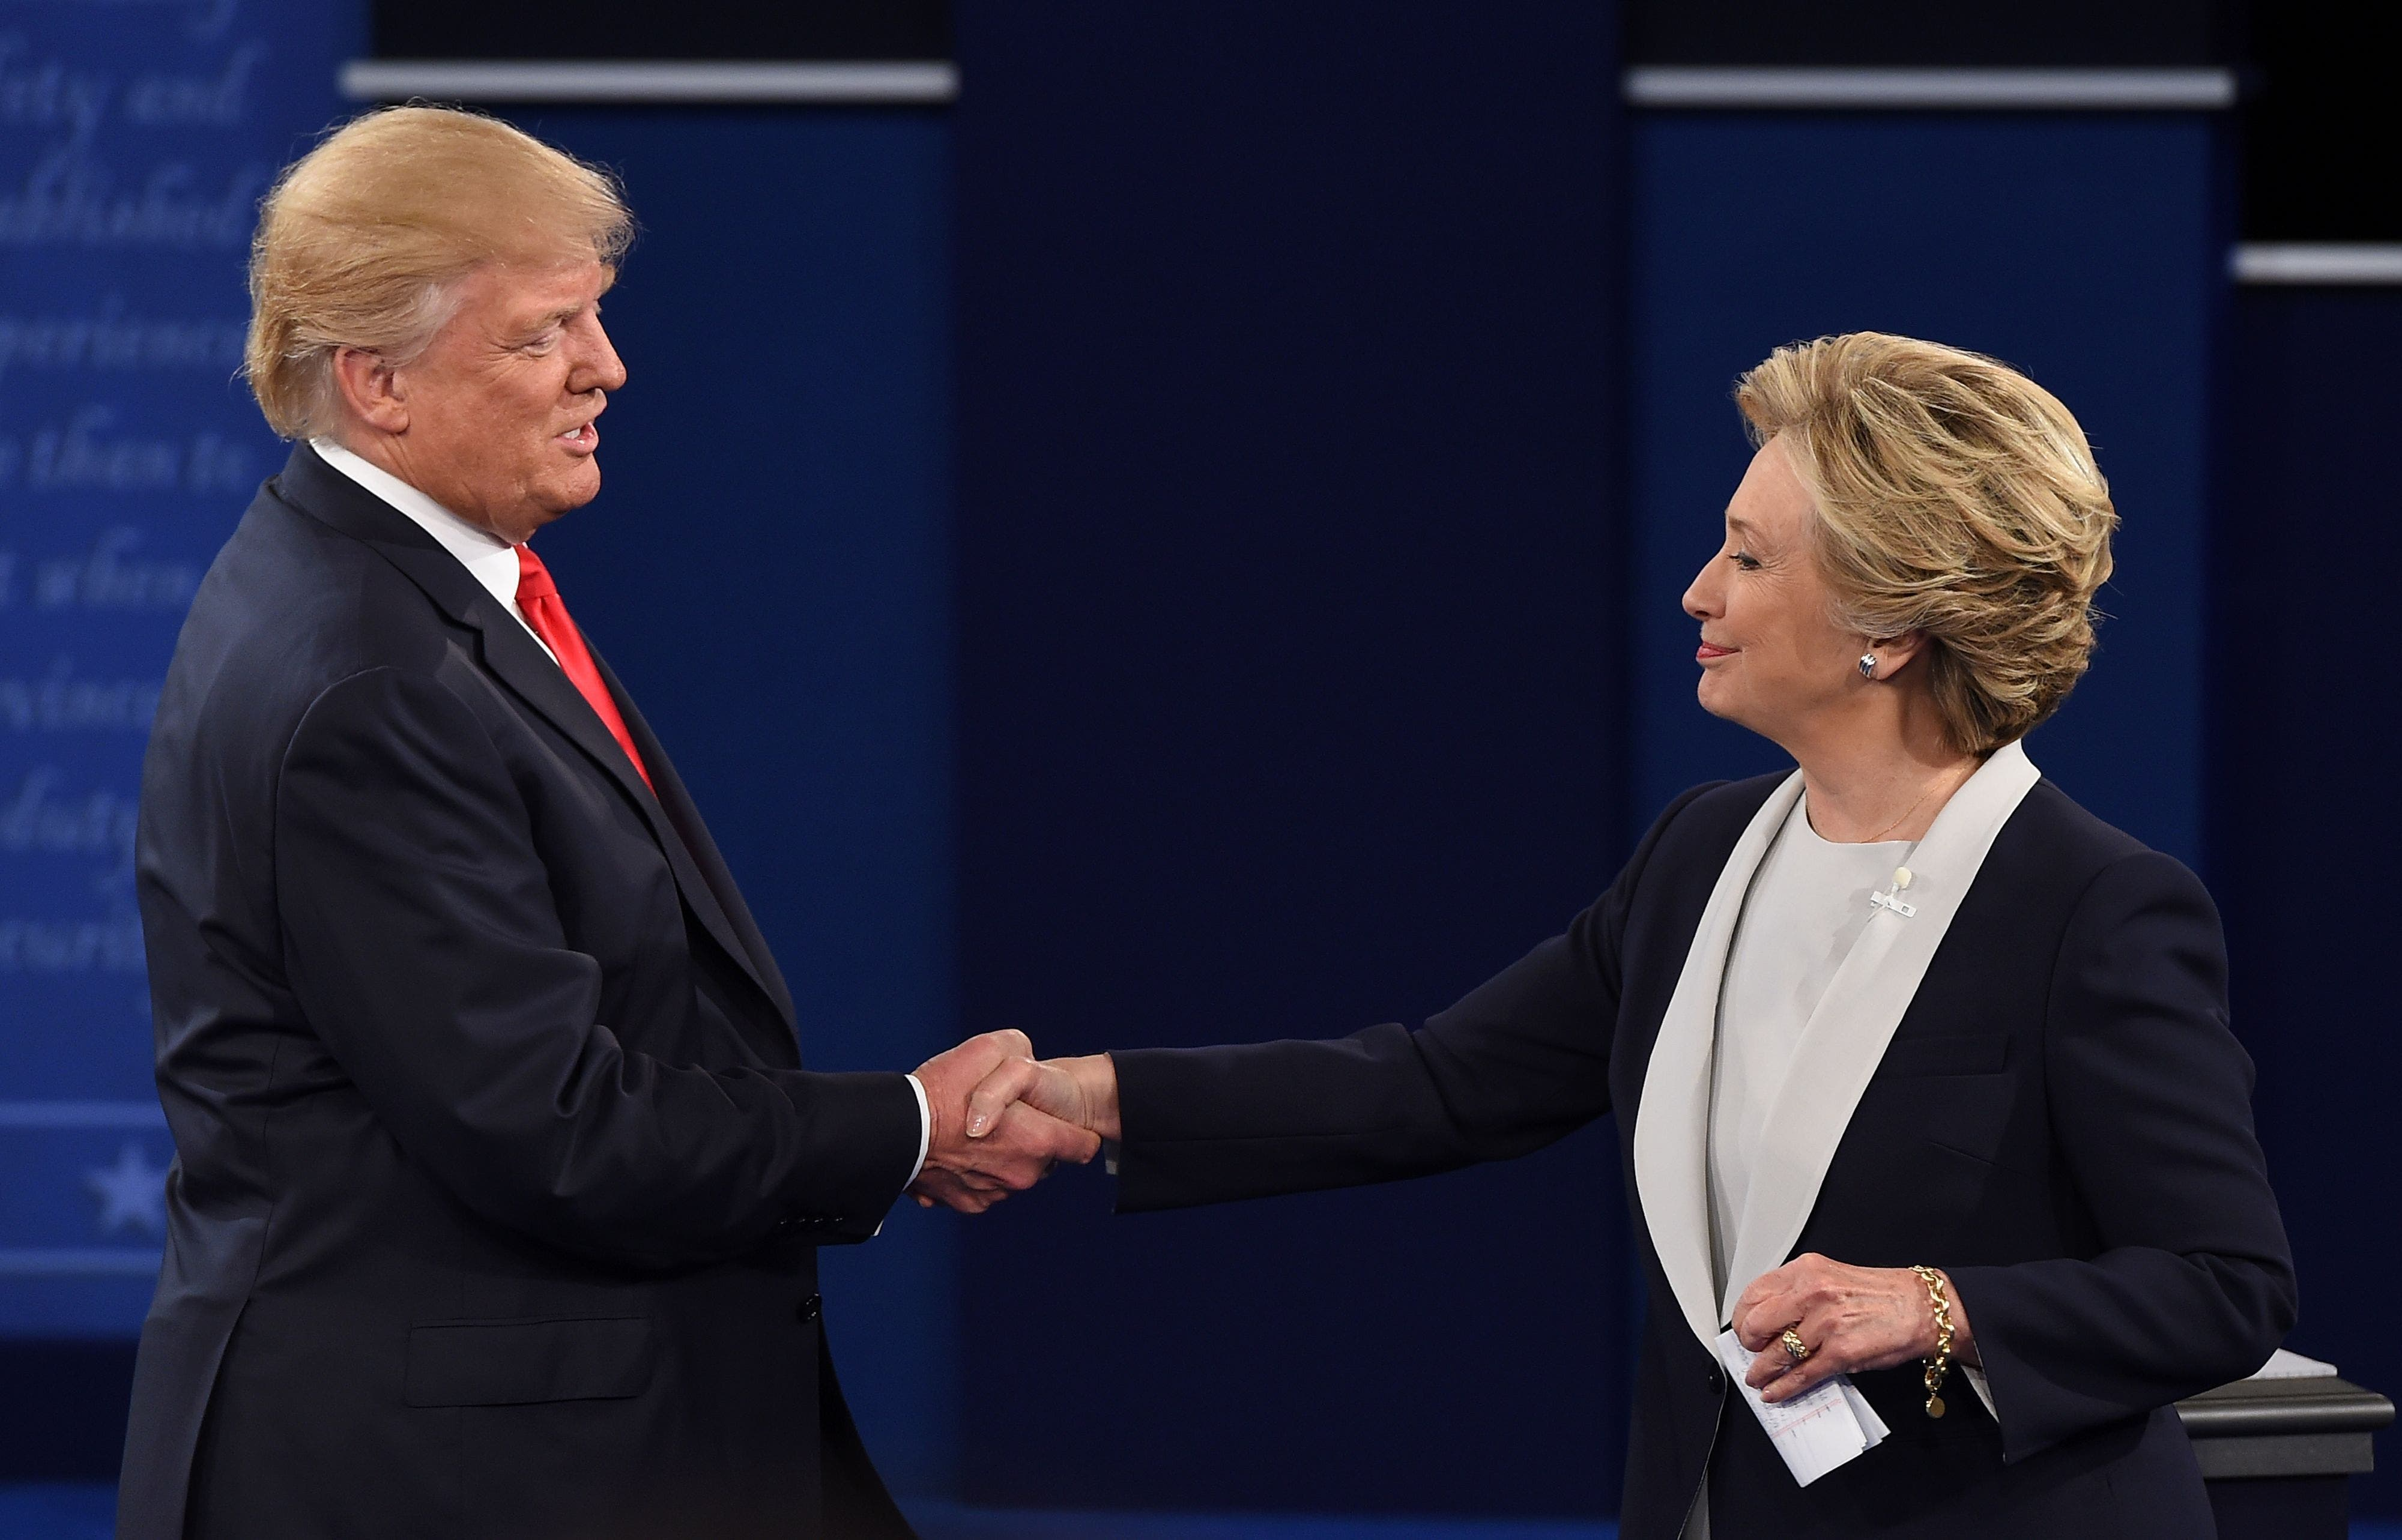 US Democratic presidential candidate Hillary Clinton and US Republican presidential candidate Donald Trump shakes hands after the second presidential debate at Washington University in St. Louis, Missouri, on October 9, 2016. / AFP / Robyn Beck